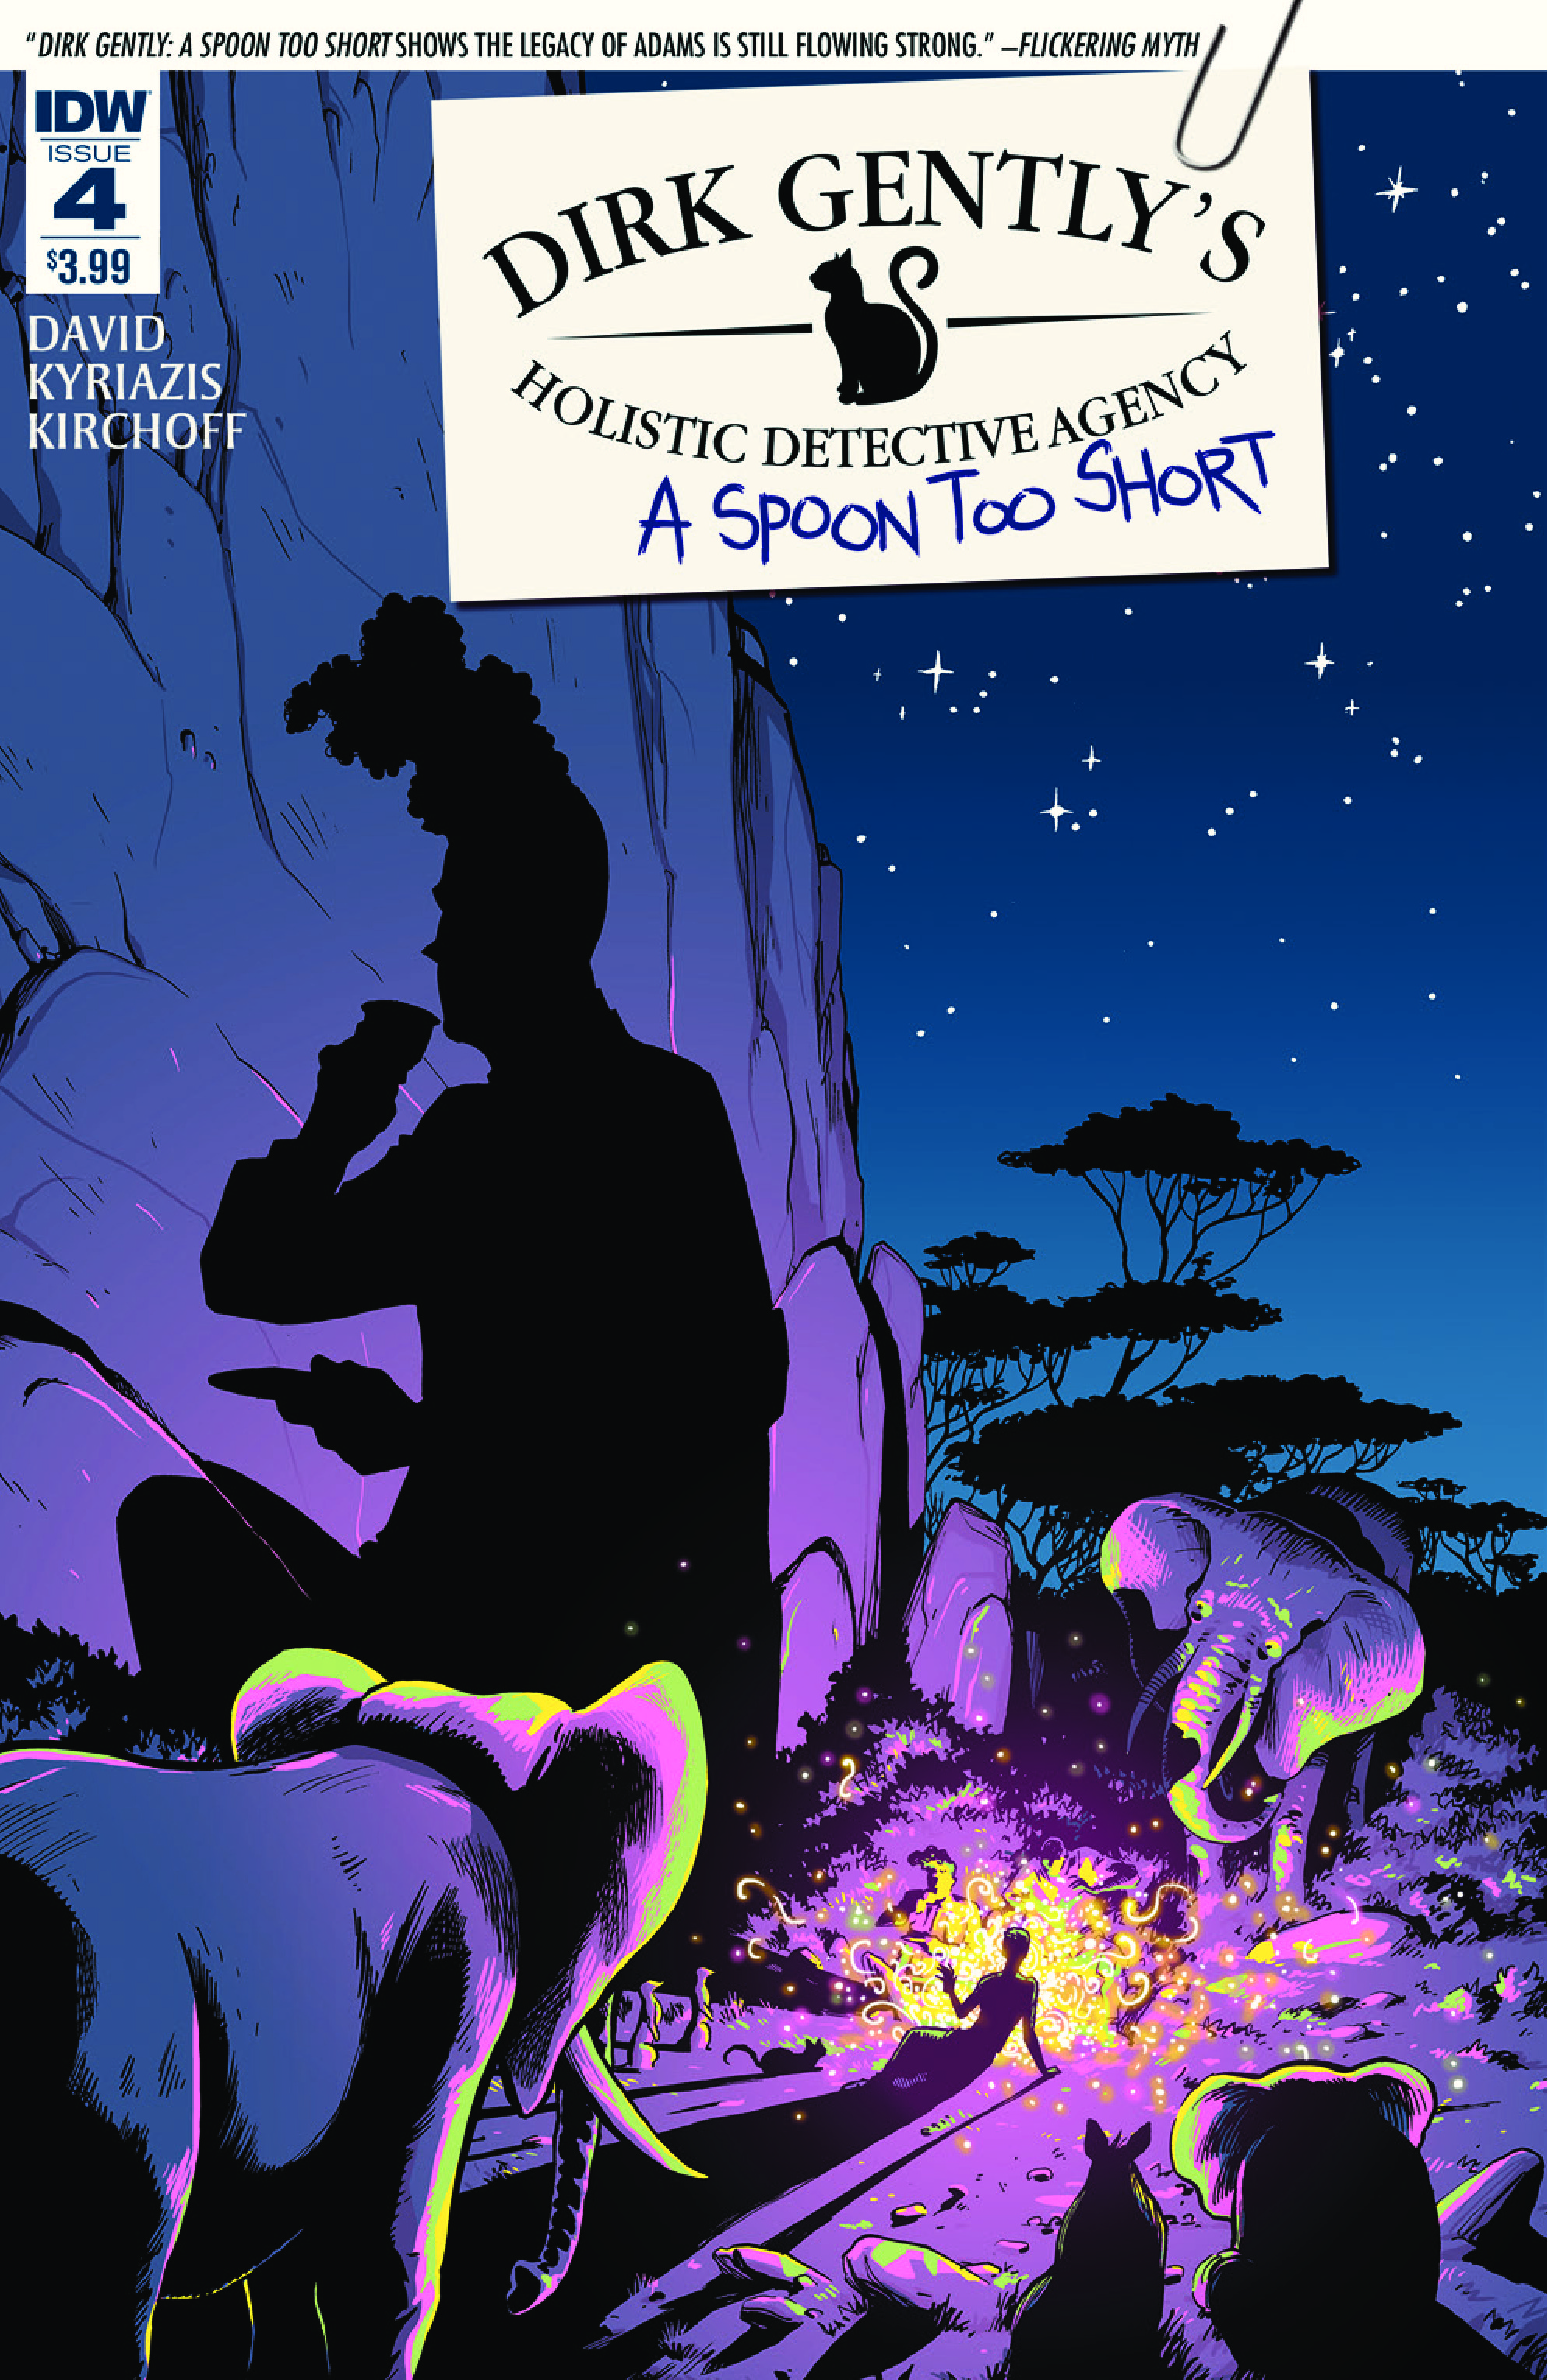 DIRK GENTLY: A SPOON TOO SHORT #4 cover